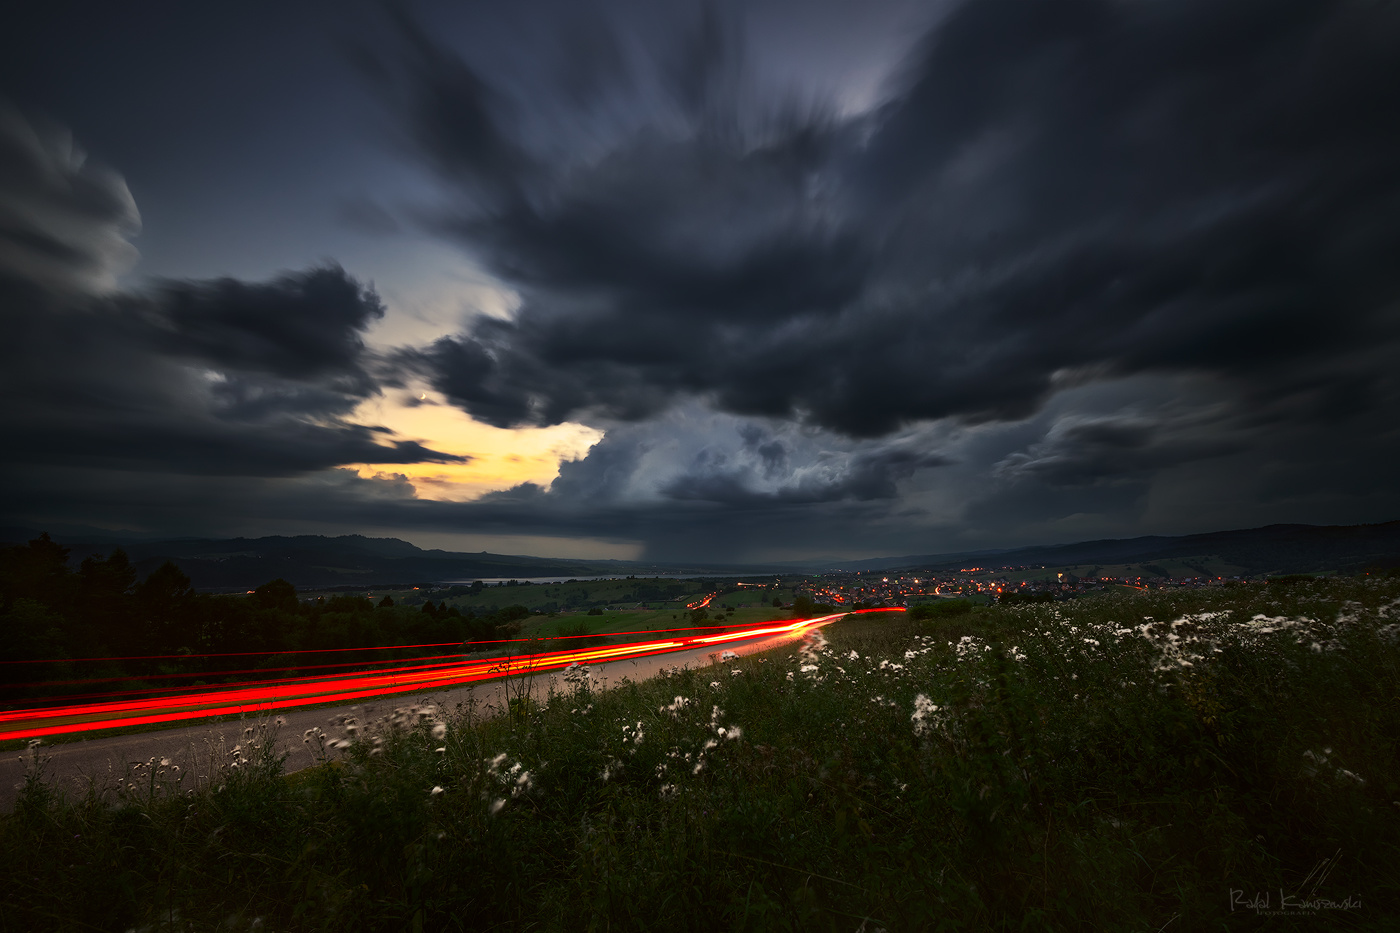 Before the storm by Rafal Kani